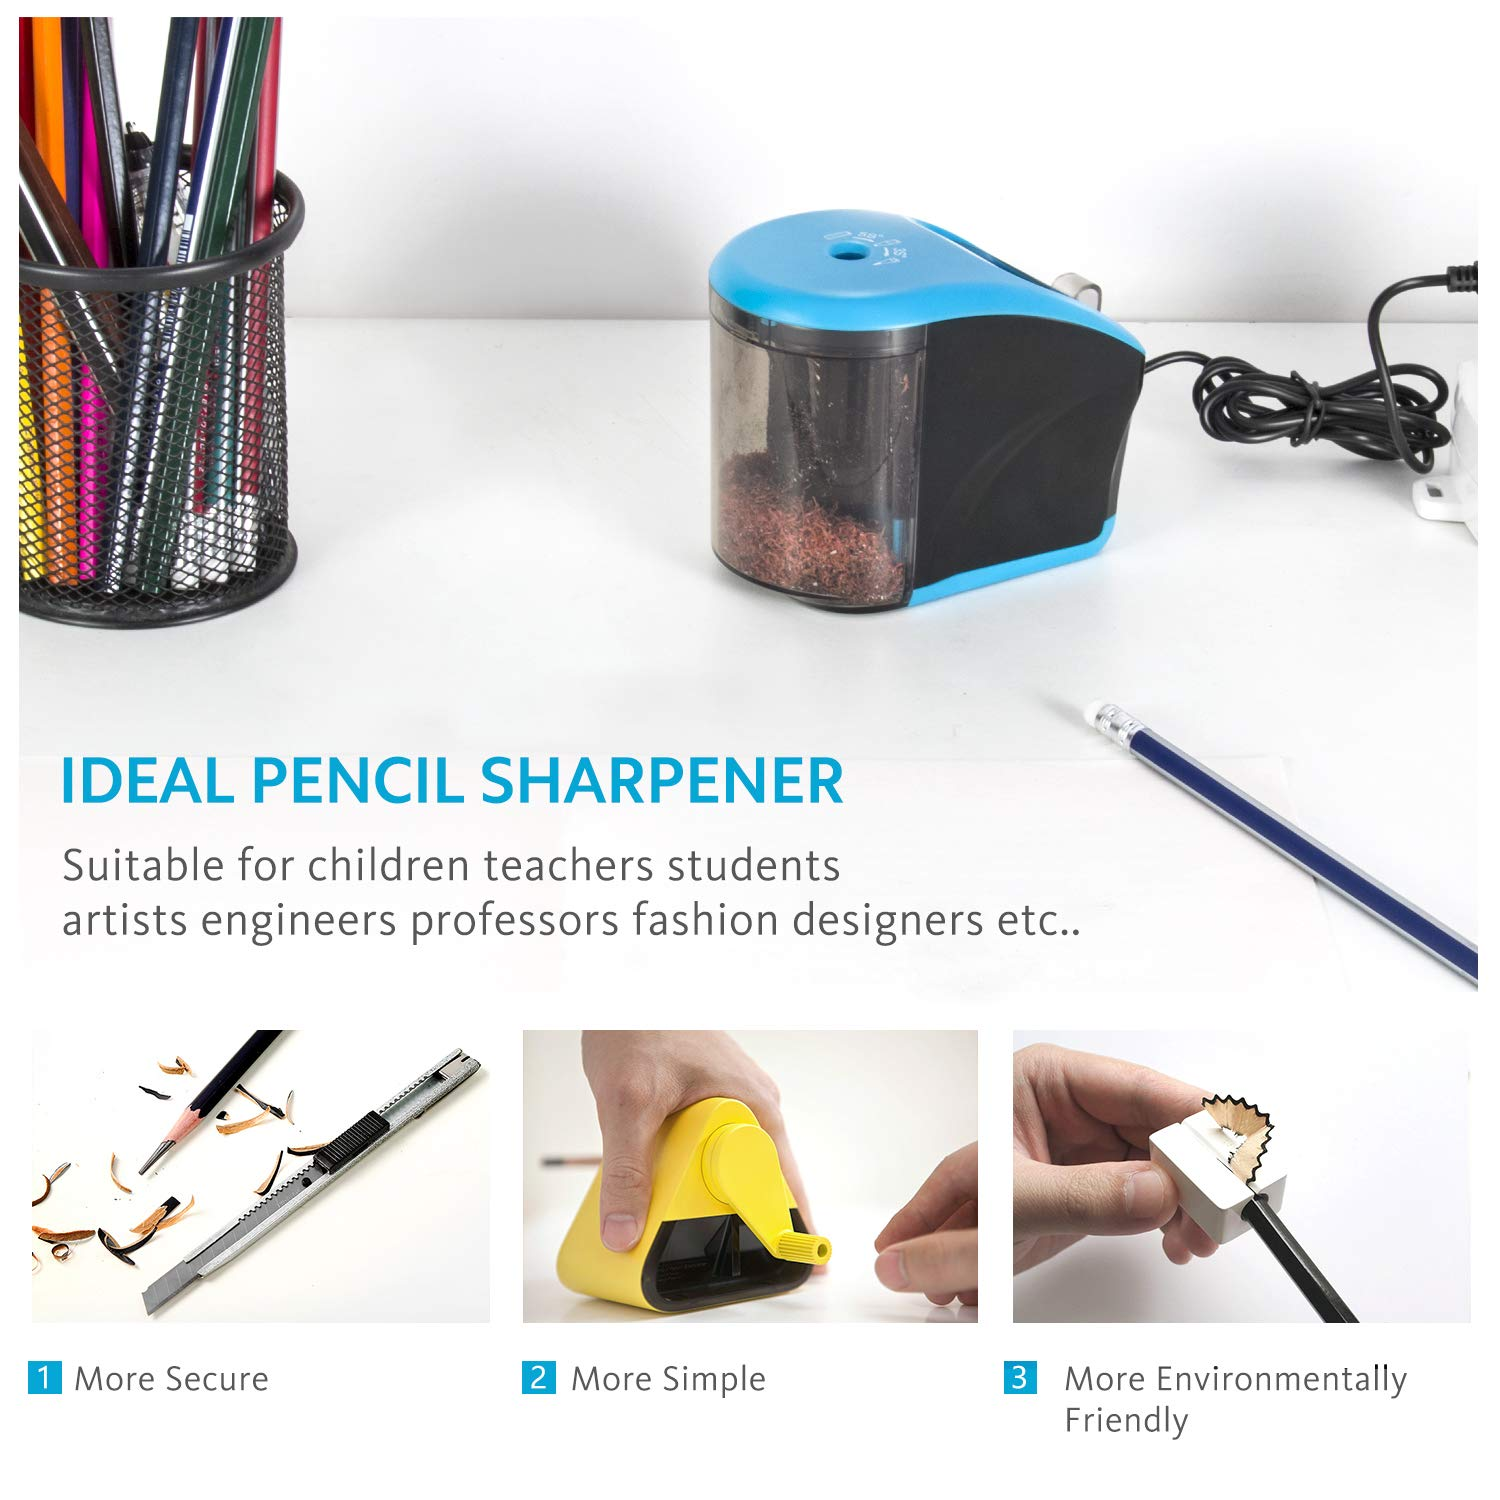 USB//Battery Operated Heavy duty Helical Blade Electronic Sharpener for No.2//Colored Pencils INVOKER Electric Pencil Sharpener 6-8mm USB Cable Included School Office Supplies for Kids Artists